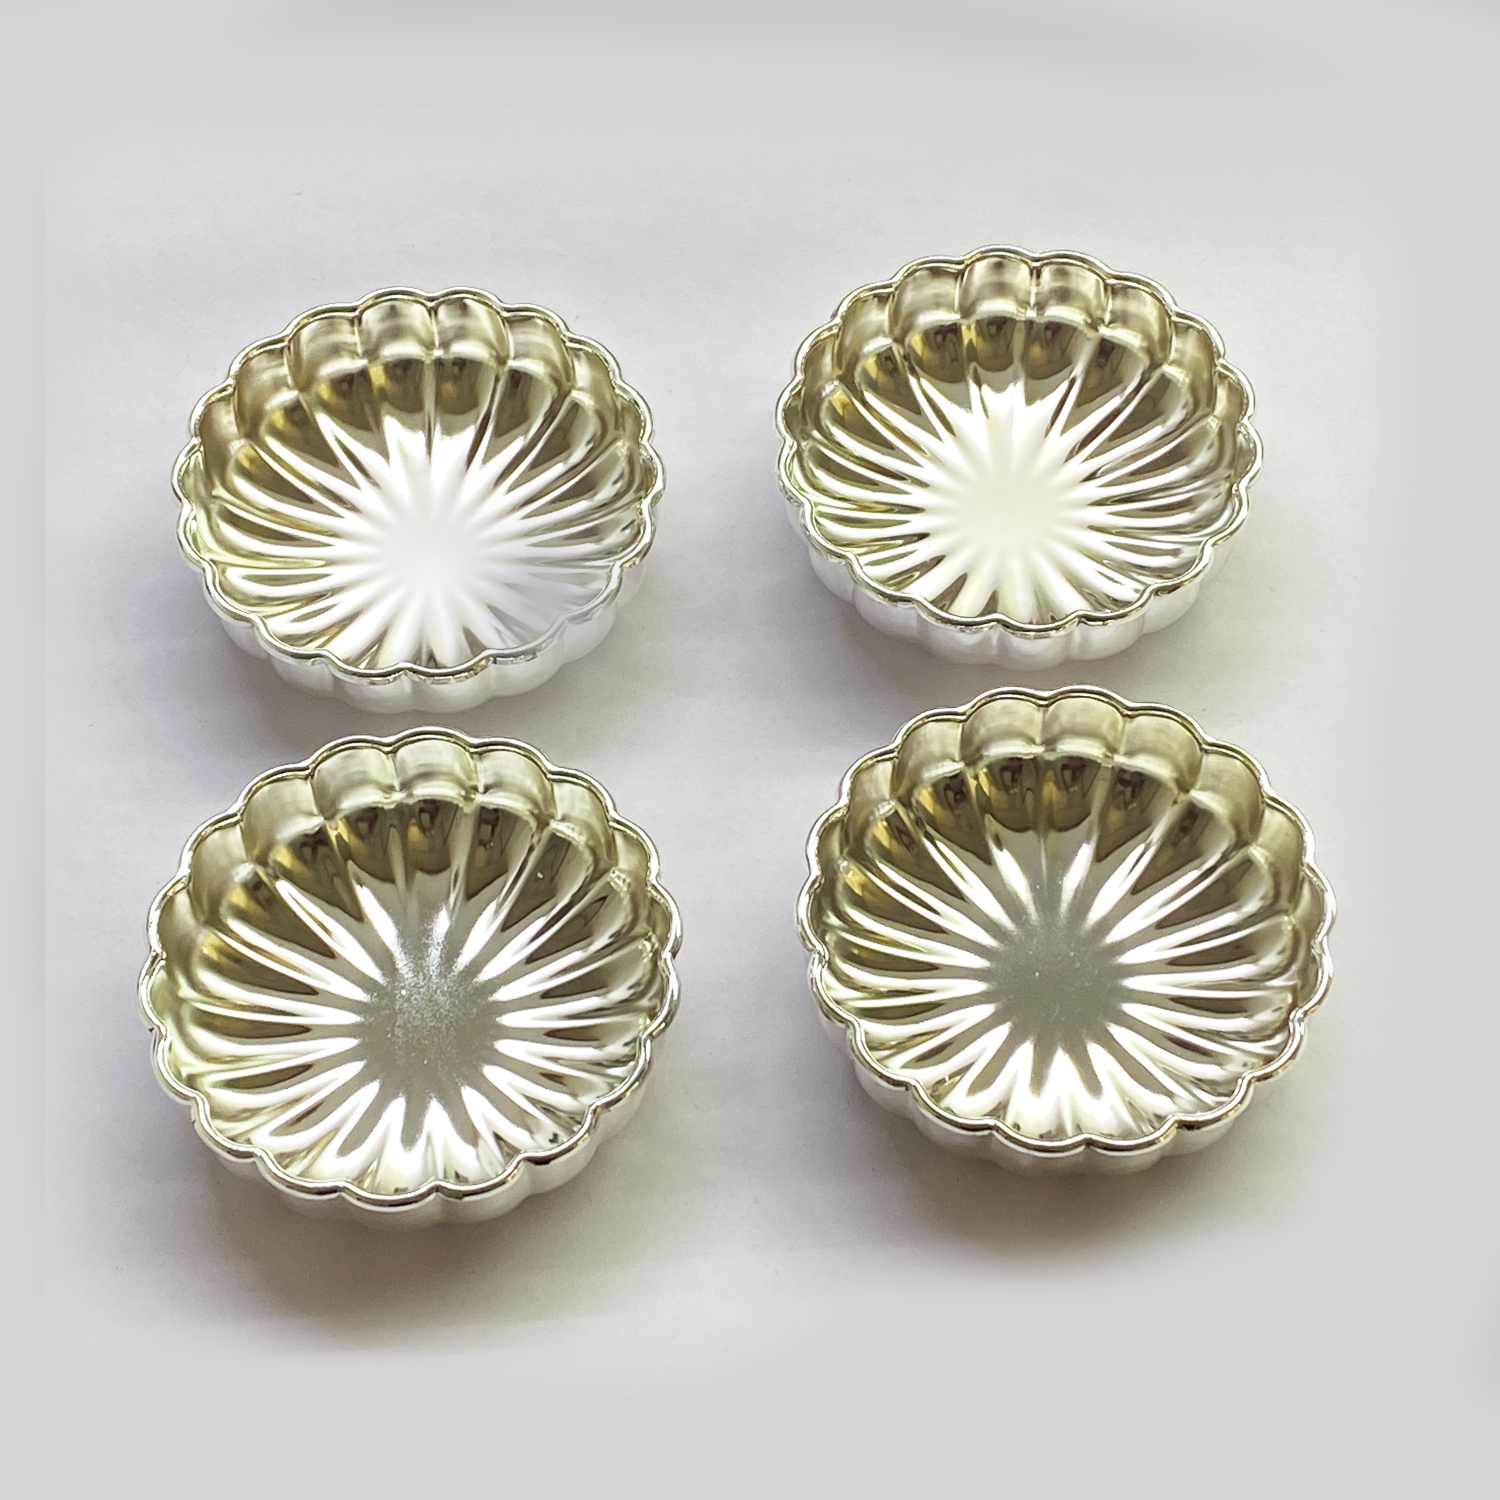 Bowl Set of 4 Bowls in Fluted Design   4″ dia each